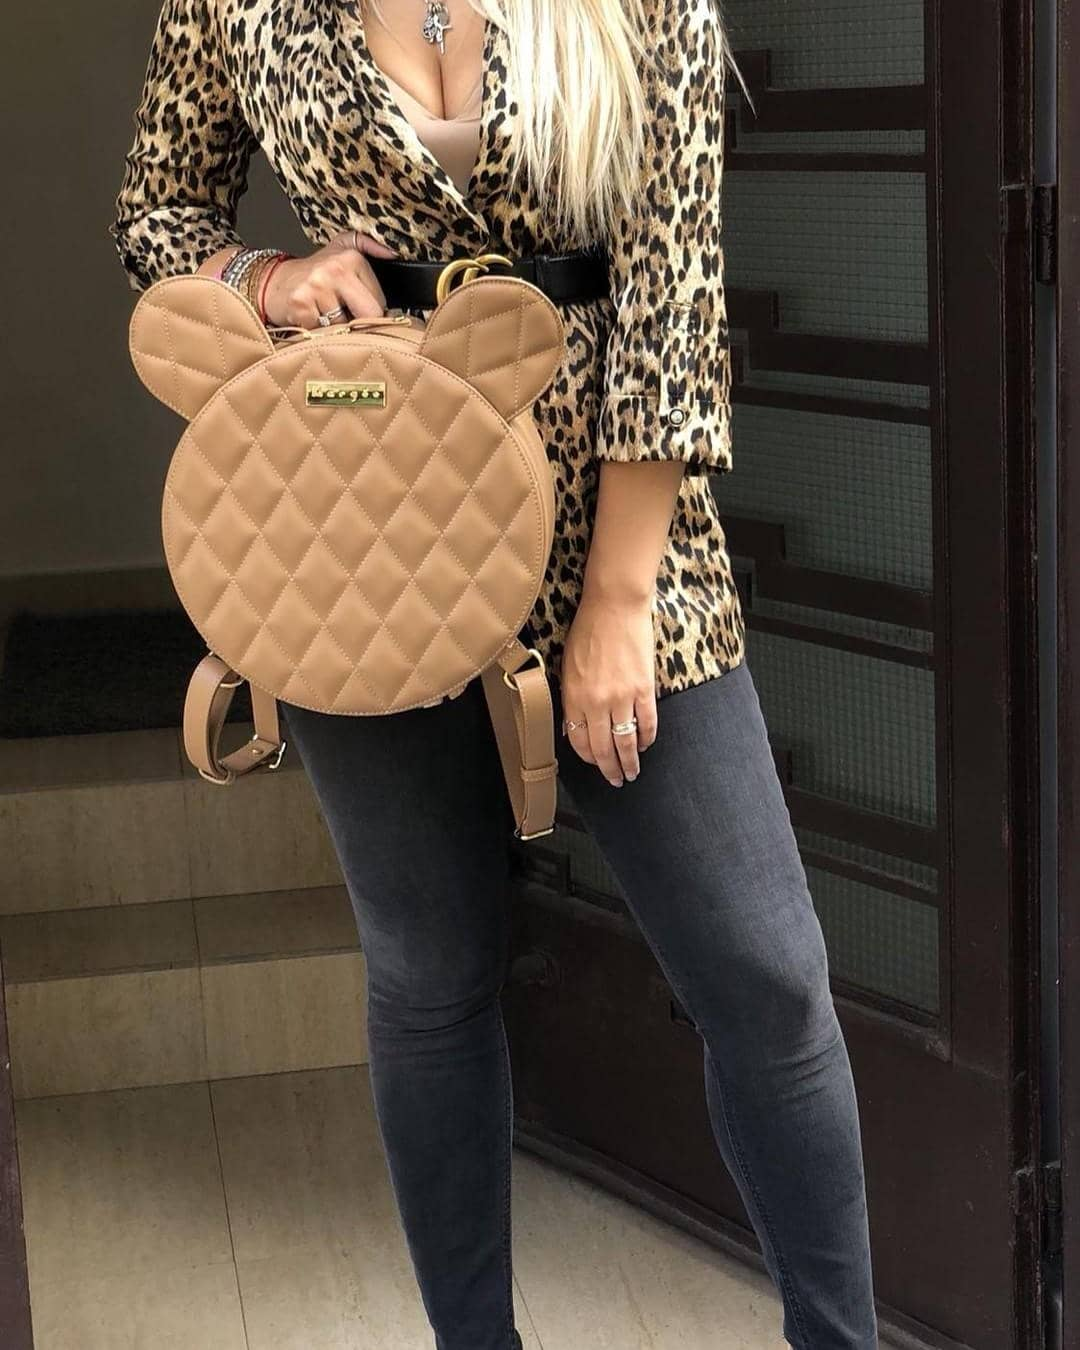 Leopard Print Blazer With Charcoal Skinny Jeans And Rounded Backpack For Spring 2021